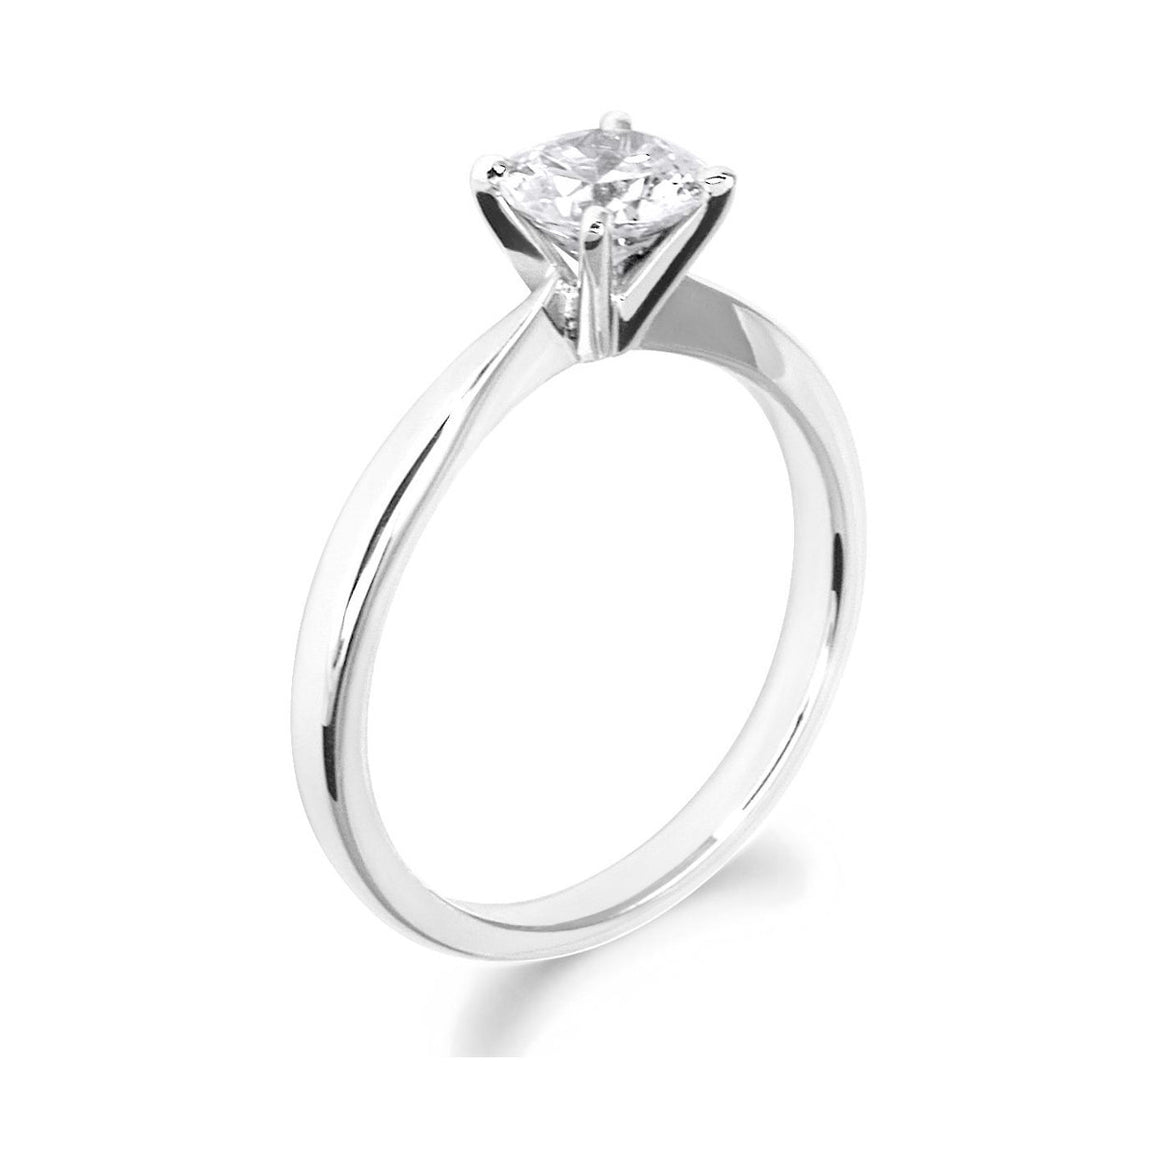 4 Claw Classic Brilliant Cut 18ct White Gold Solitaire